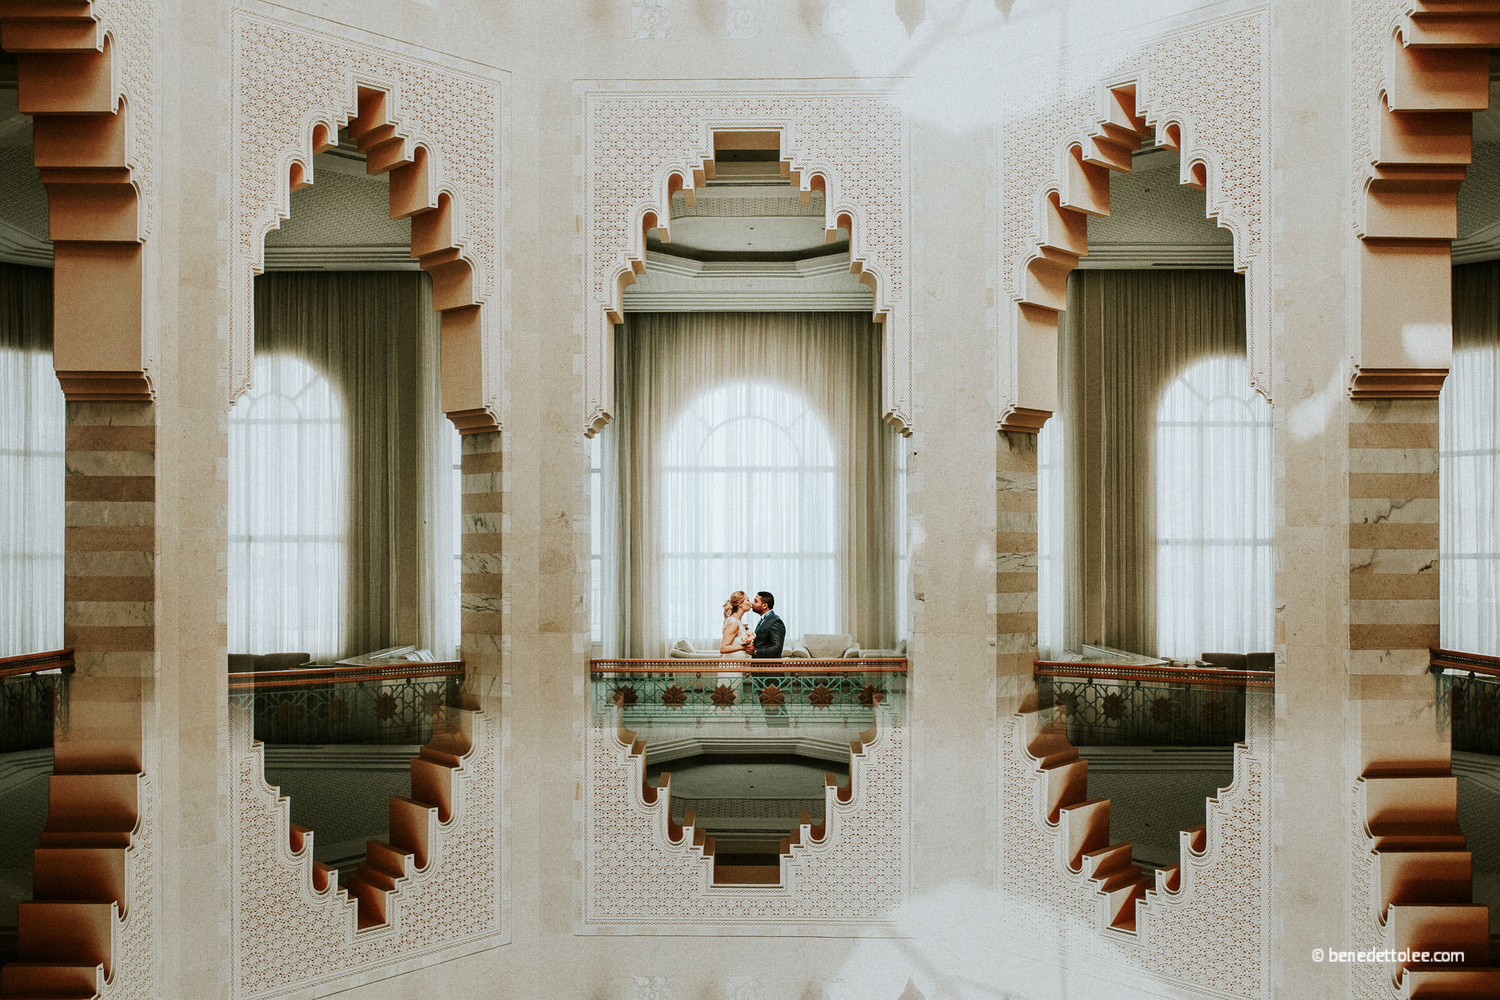 Symmetry by Benedetto Lee